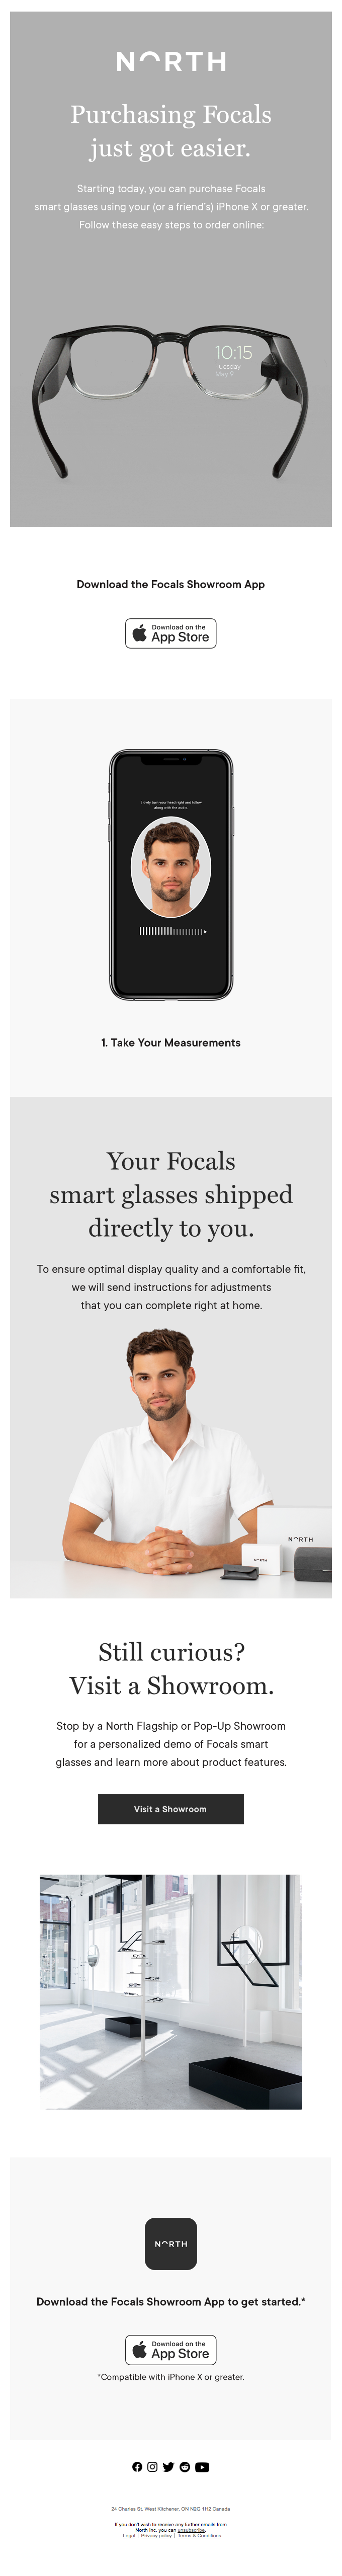 Focals Smart Glasses: Now Available for Purchase Online